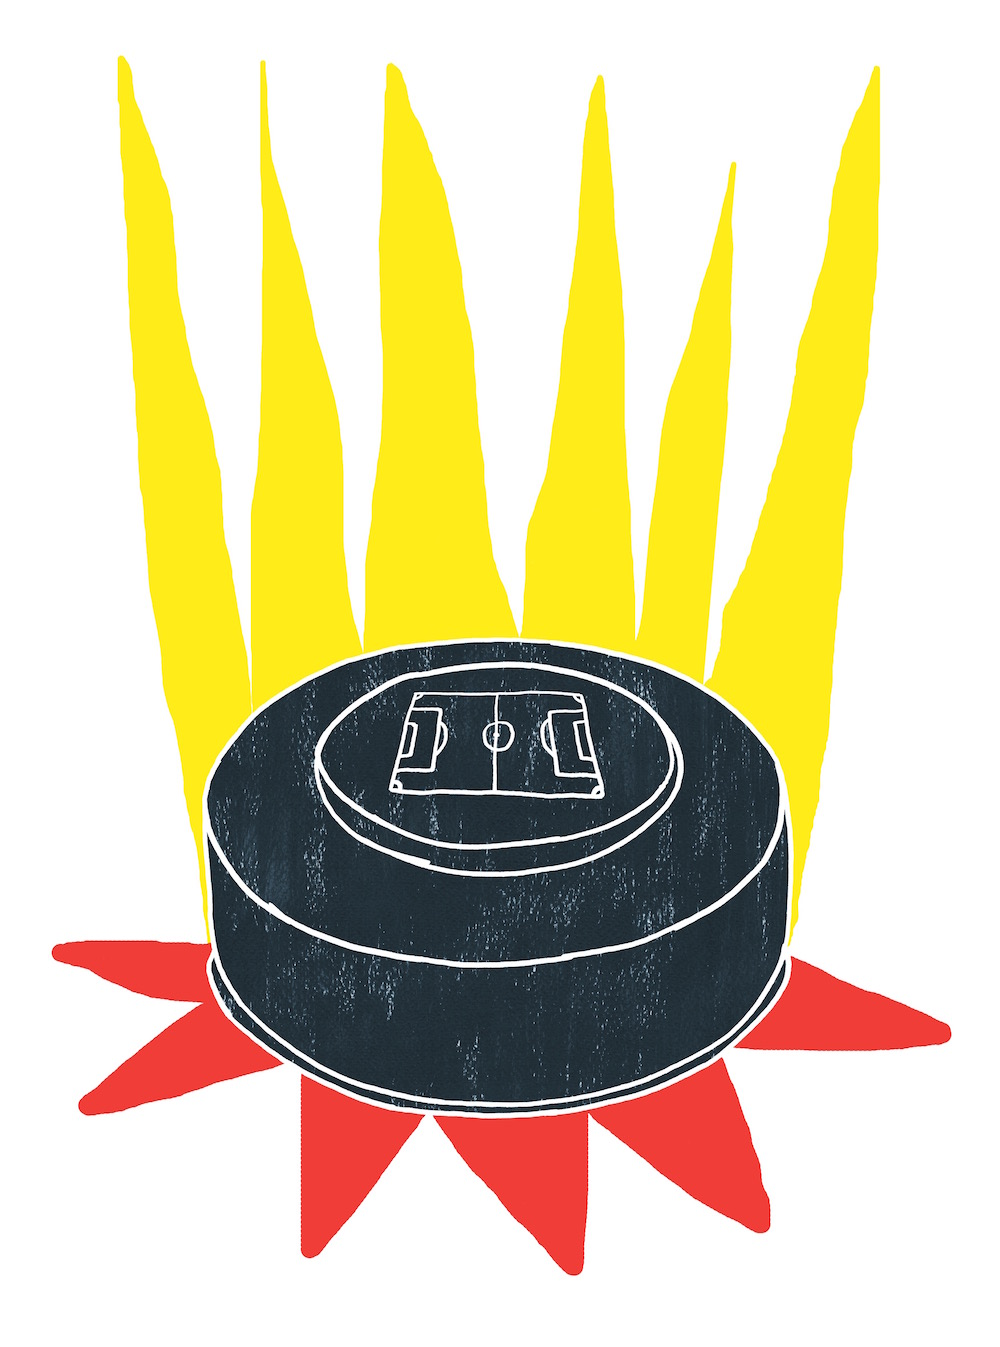 illustration, illustrations, illustrator, illustrators, radiate, radiation, puck, button, game, play